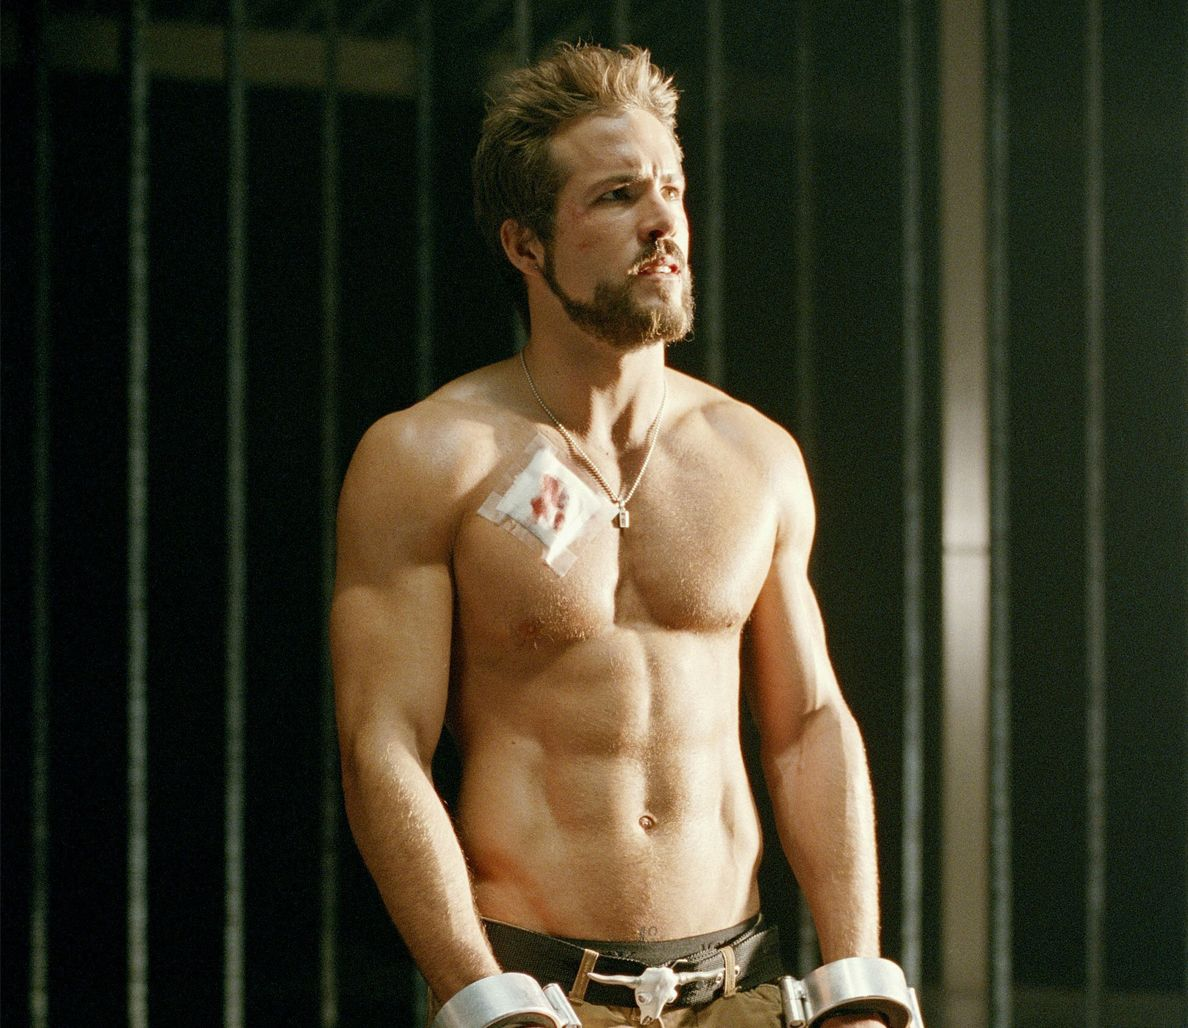 Ryan Gosling: The Abs Arent Photoshopped - The Male Fappening